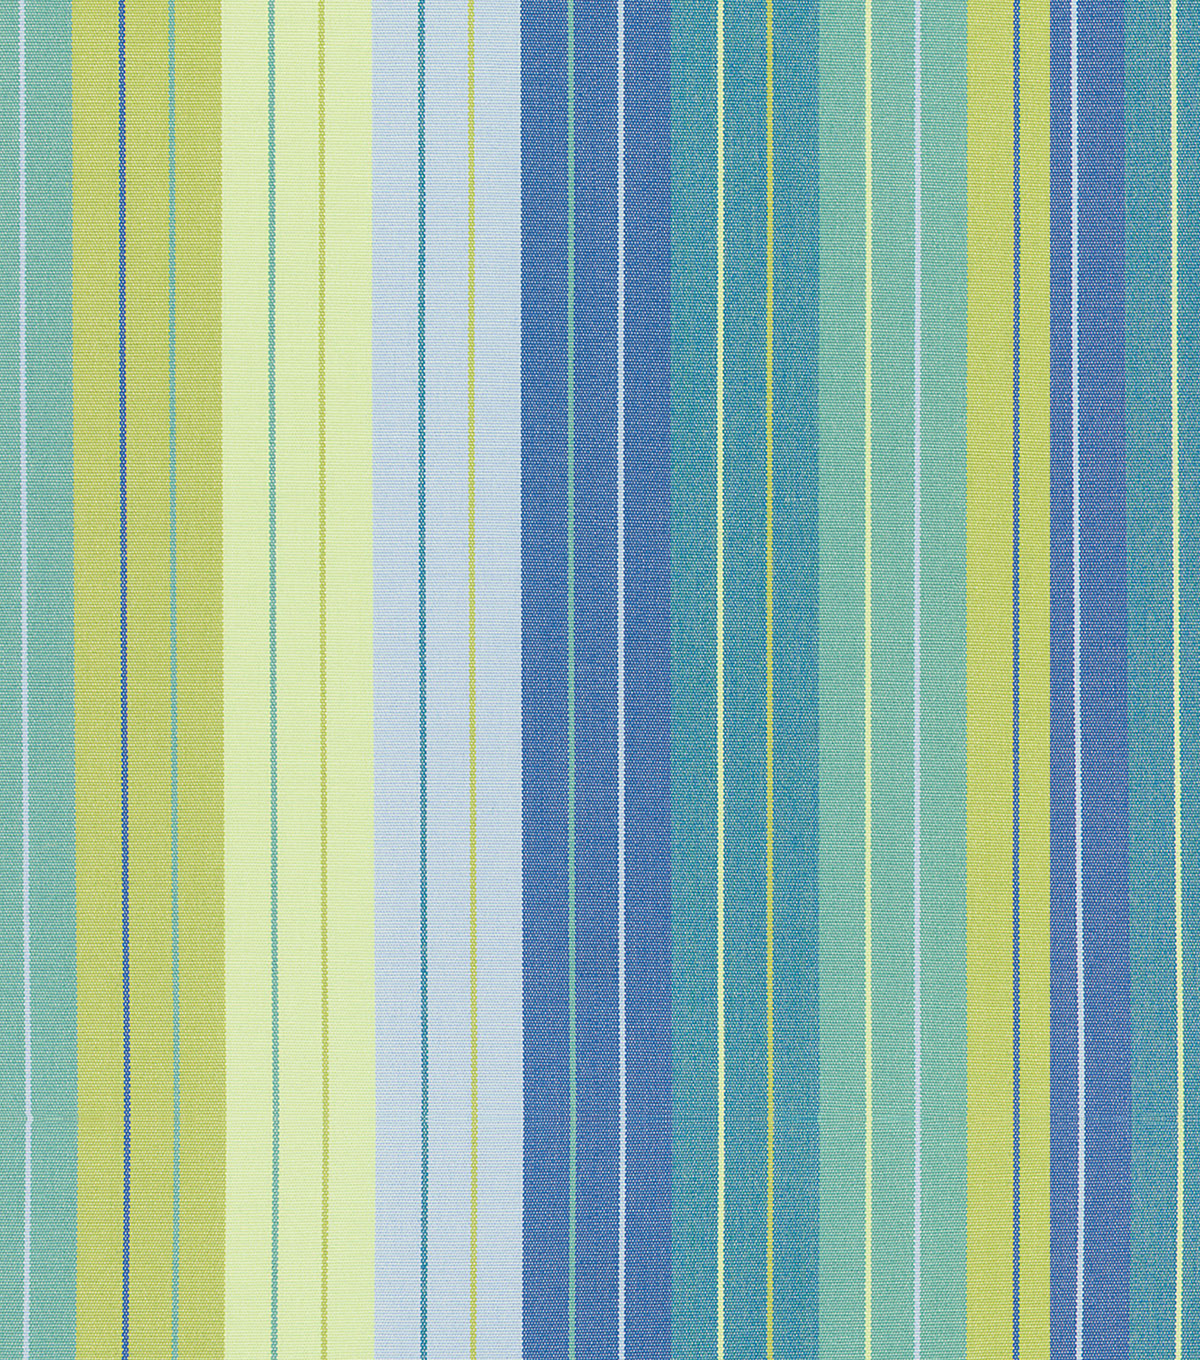 Sunbrella Outdoor Stripe Fabric 54 U0022 Seville Seaside